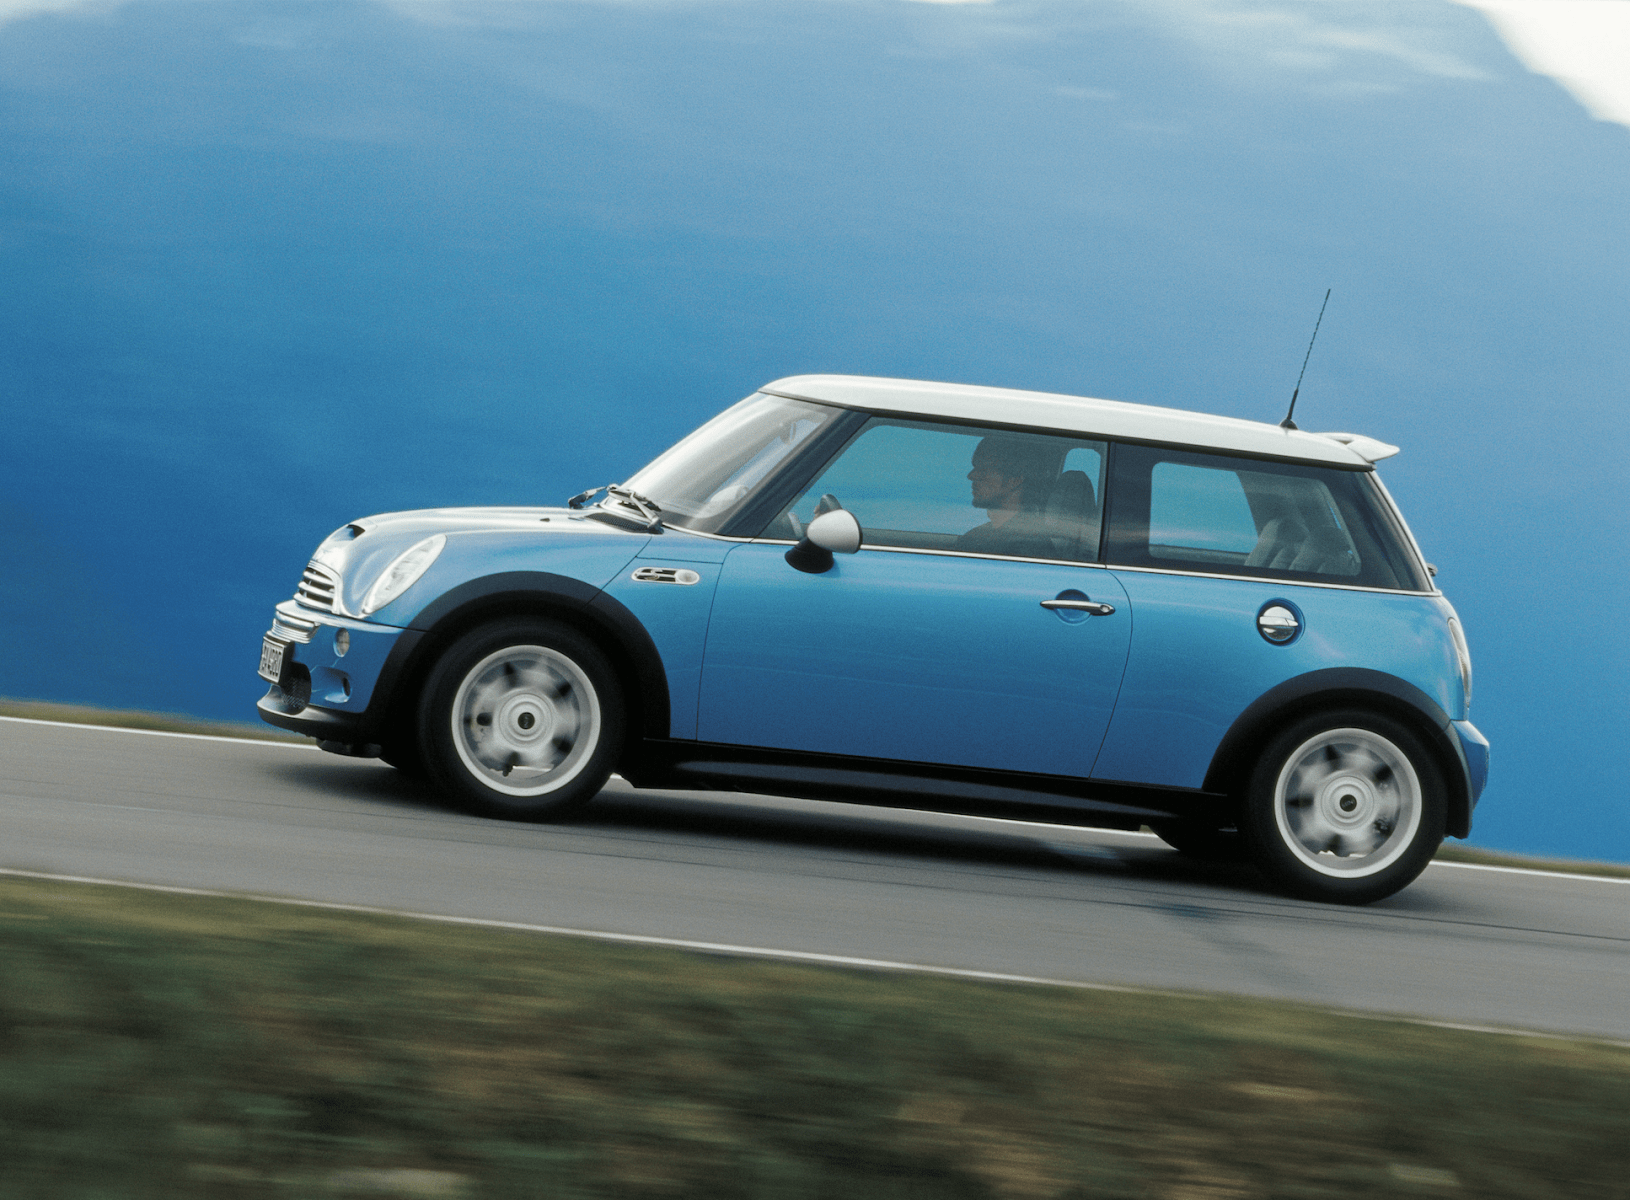 Side view of a blue Mini Cooper S